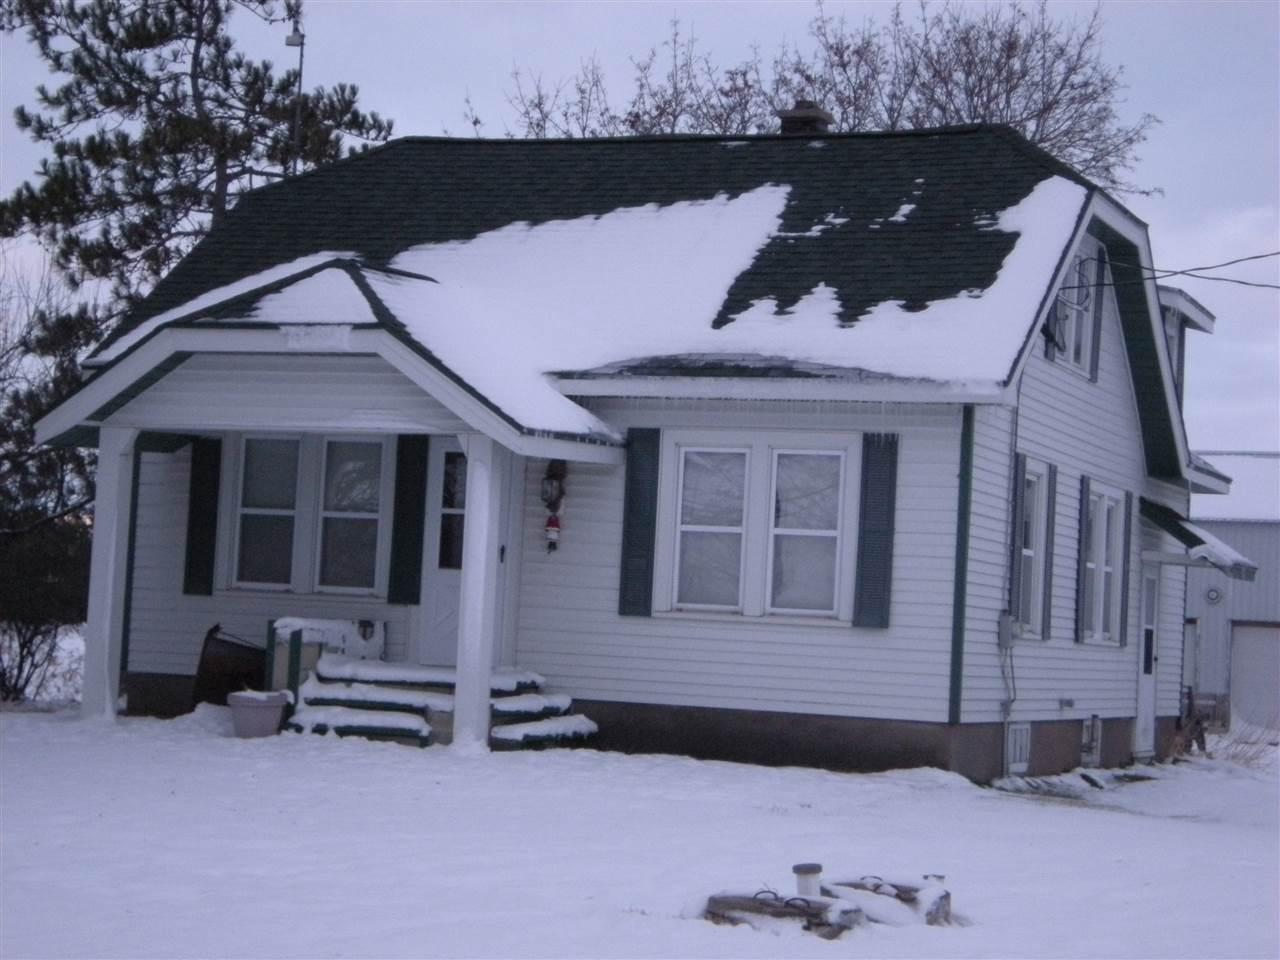 Hard to find! Country property only 5 miles from Clintonville. Two bedrooms on main level, one up. Original woodwork and hardwood floors. Nice outbuildings. 32x64 garage and shed. 60x80' shed/corn crib. Small barn, grain bin. New well being installed. Perfect hobby farm for beef, pigs, horses, etc. Year built is estimated.